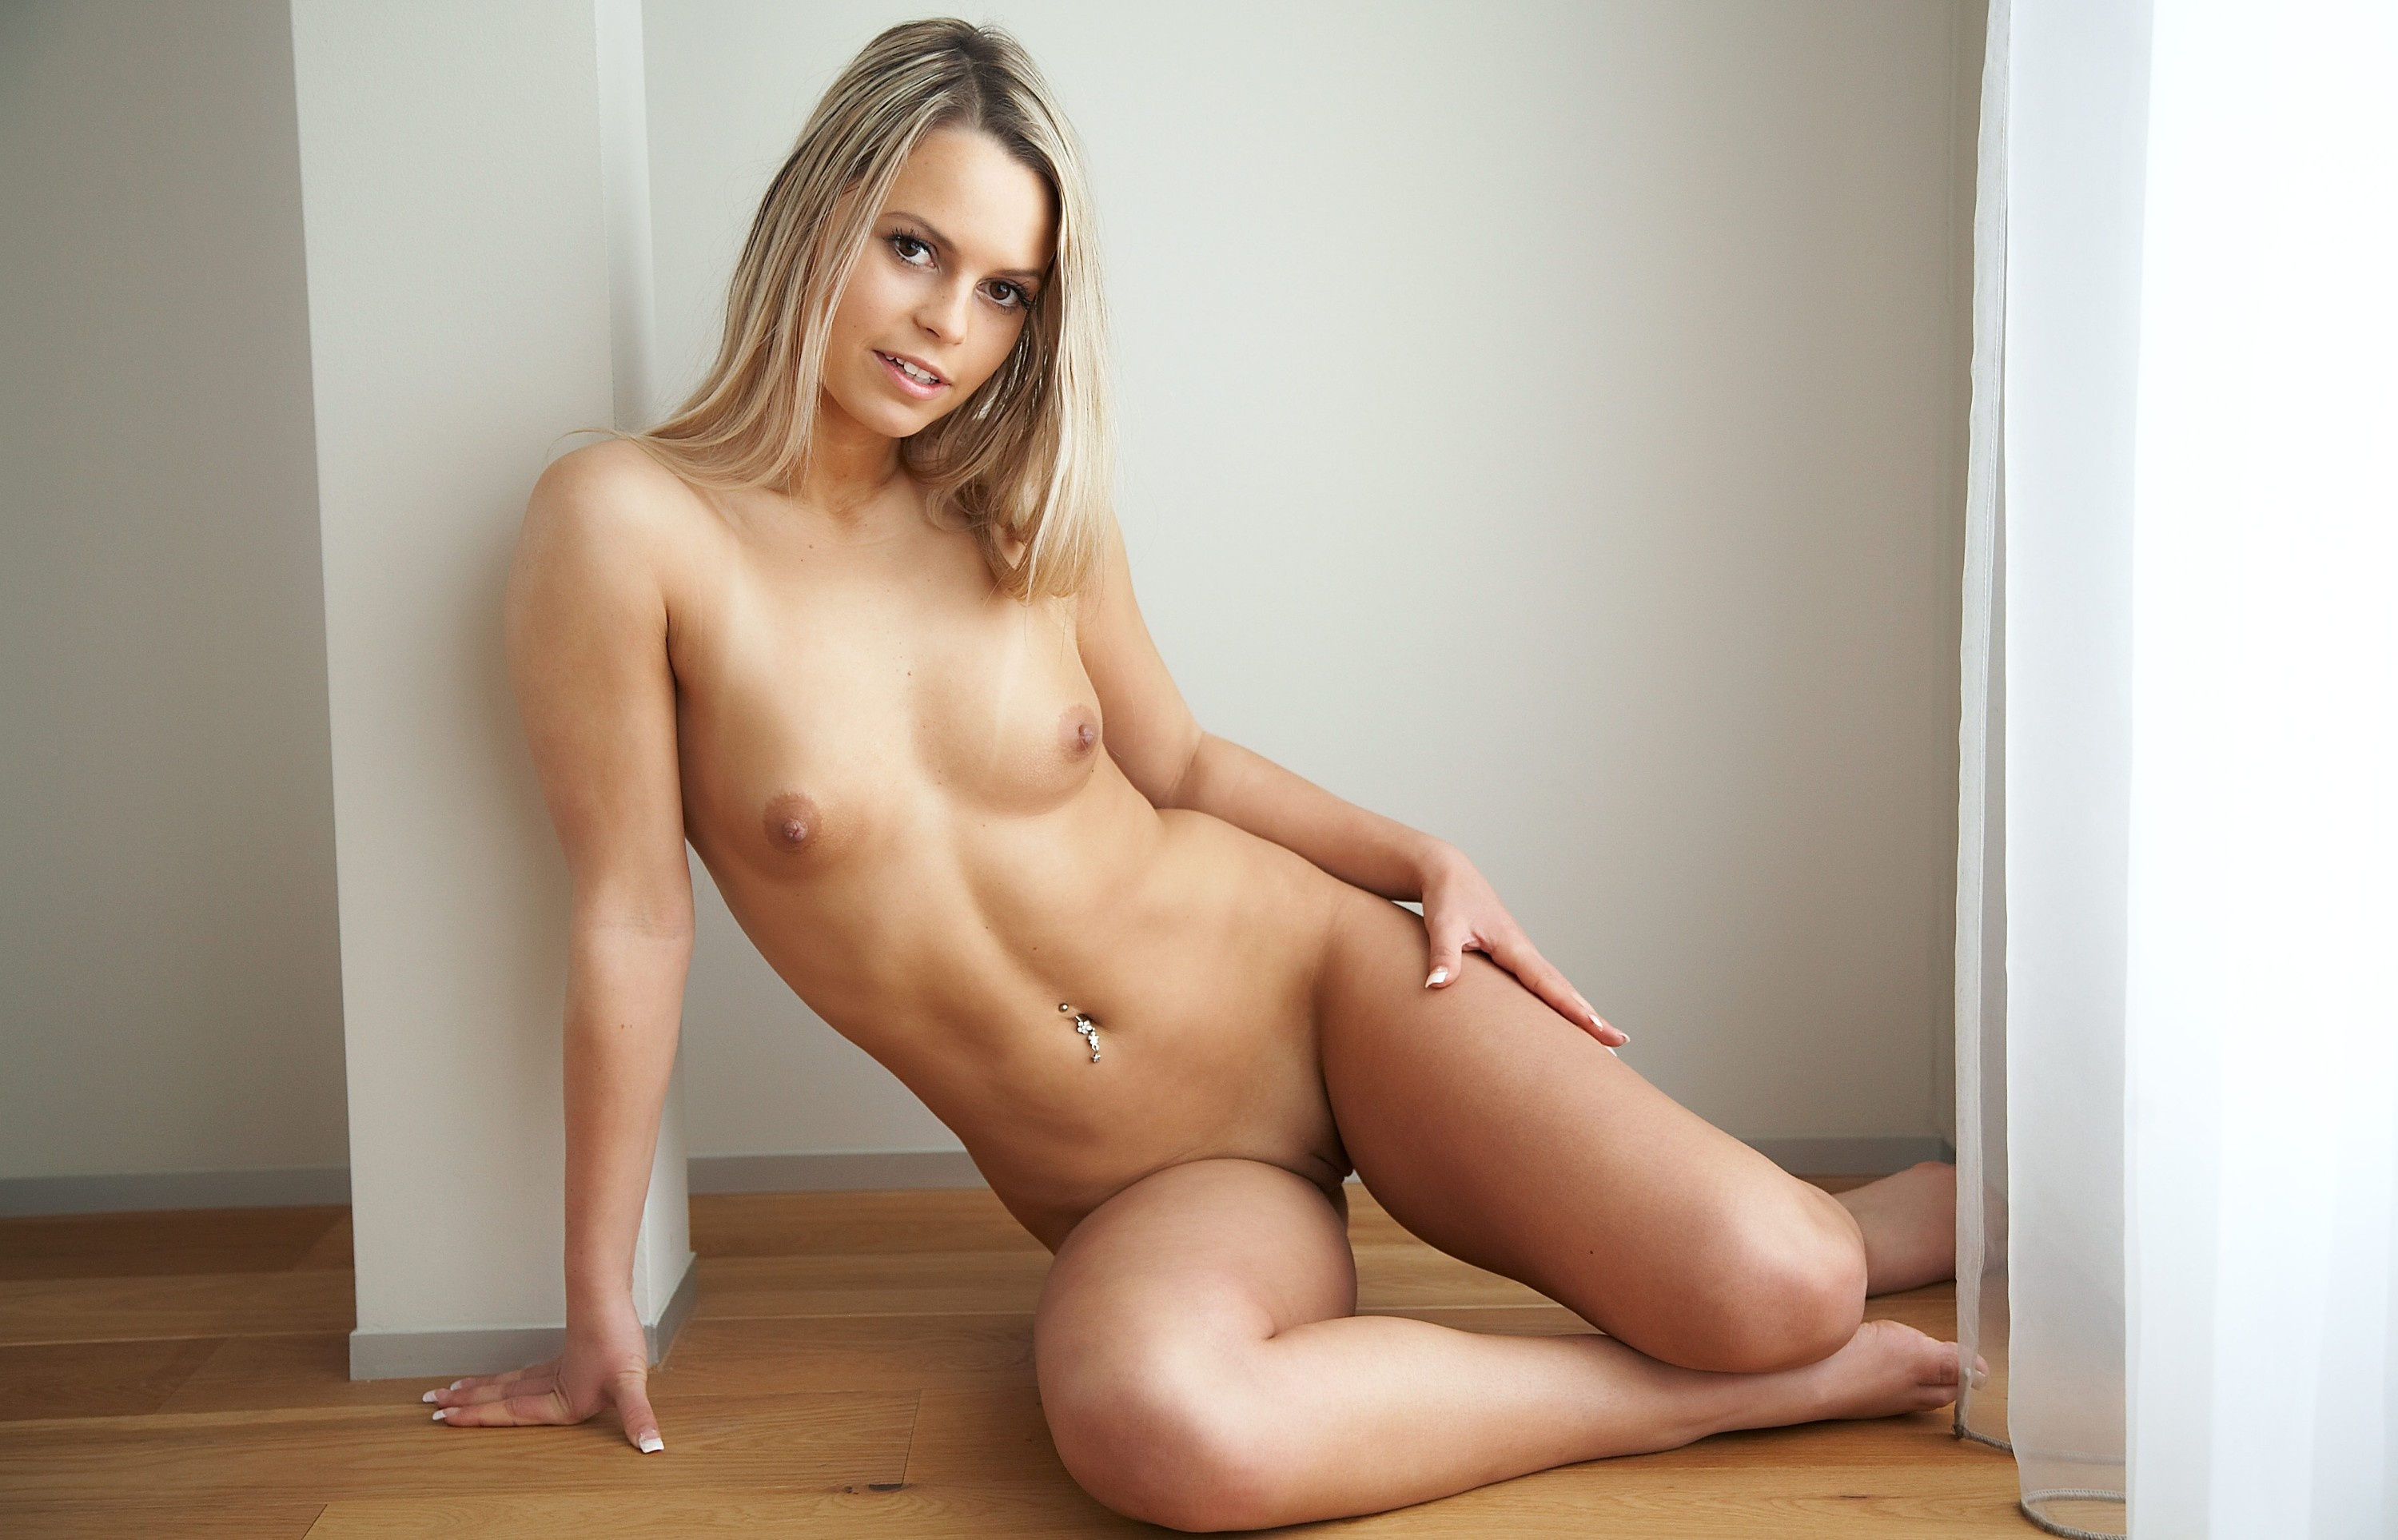 world woman hot naked images